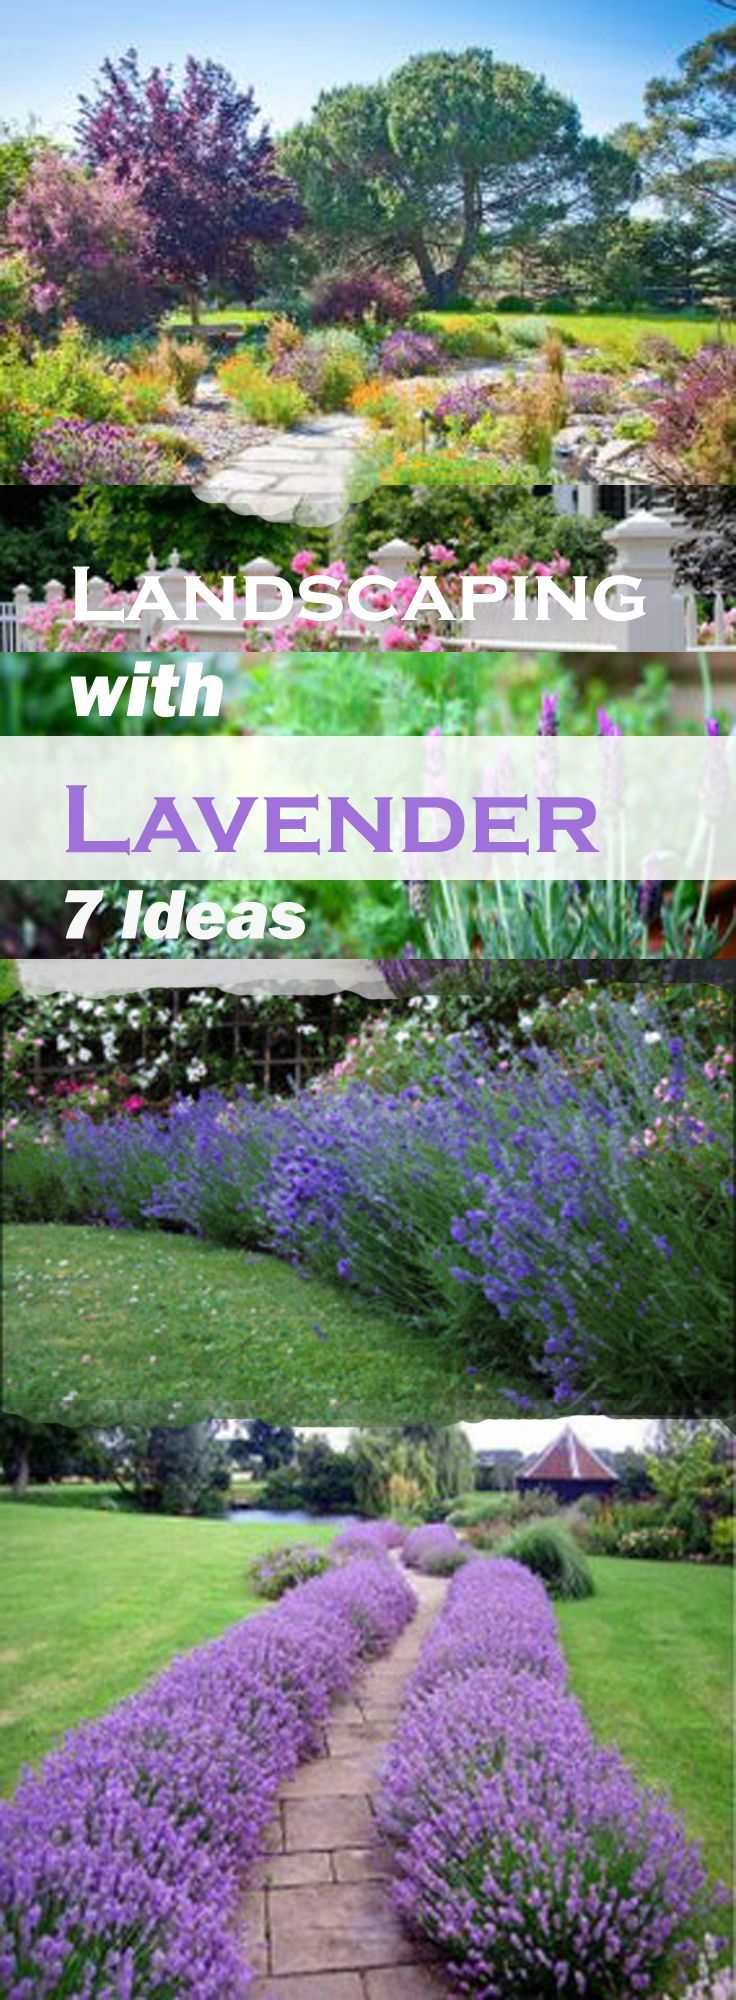 7 ways to use lavender in garden design - Home And Garden Designs